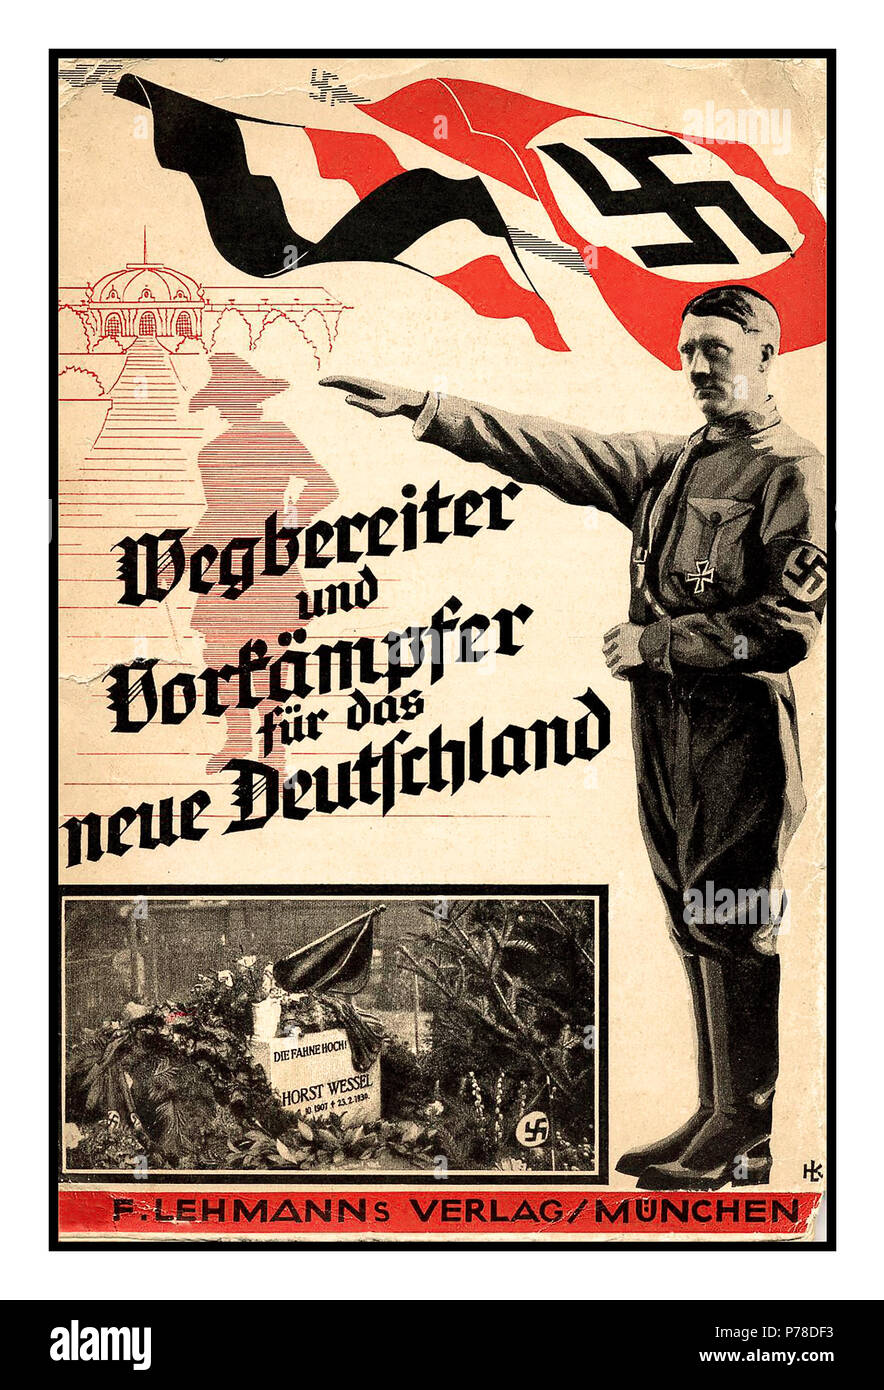 Vintage Propaganda Nazi Postcard featuring Adolf Hitler in uniform with Swastika Flag and inset grave image of Horst Wessel Horst Ludwig Georg Erich Wessel (9 October 1907 – 23 February 1930) was a murdered Berlin leader of the Nazi Party's 'stormtroopers' Forerunner and Trailblazer for the new Germany München, 1933 - Stock Image